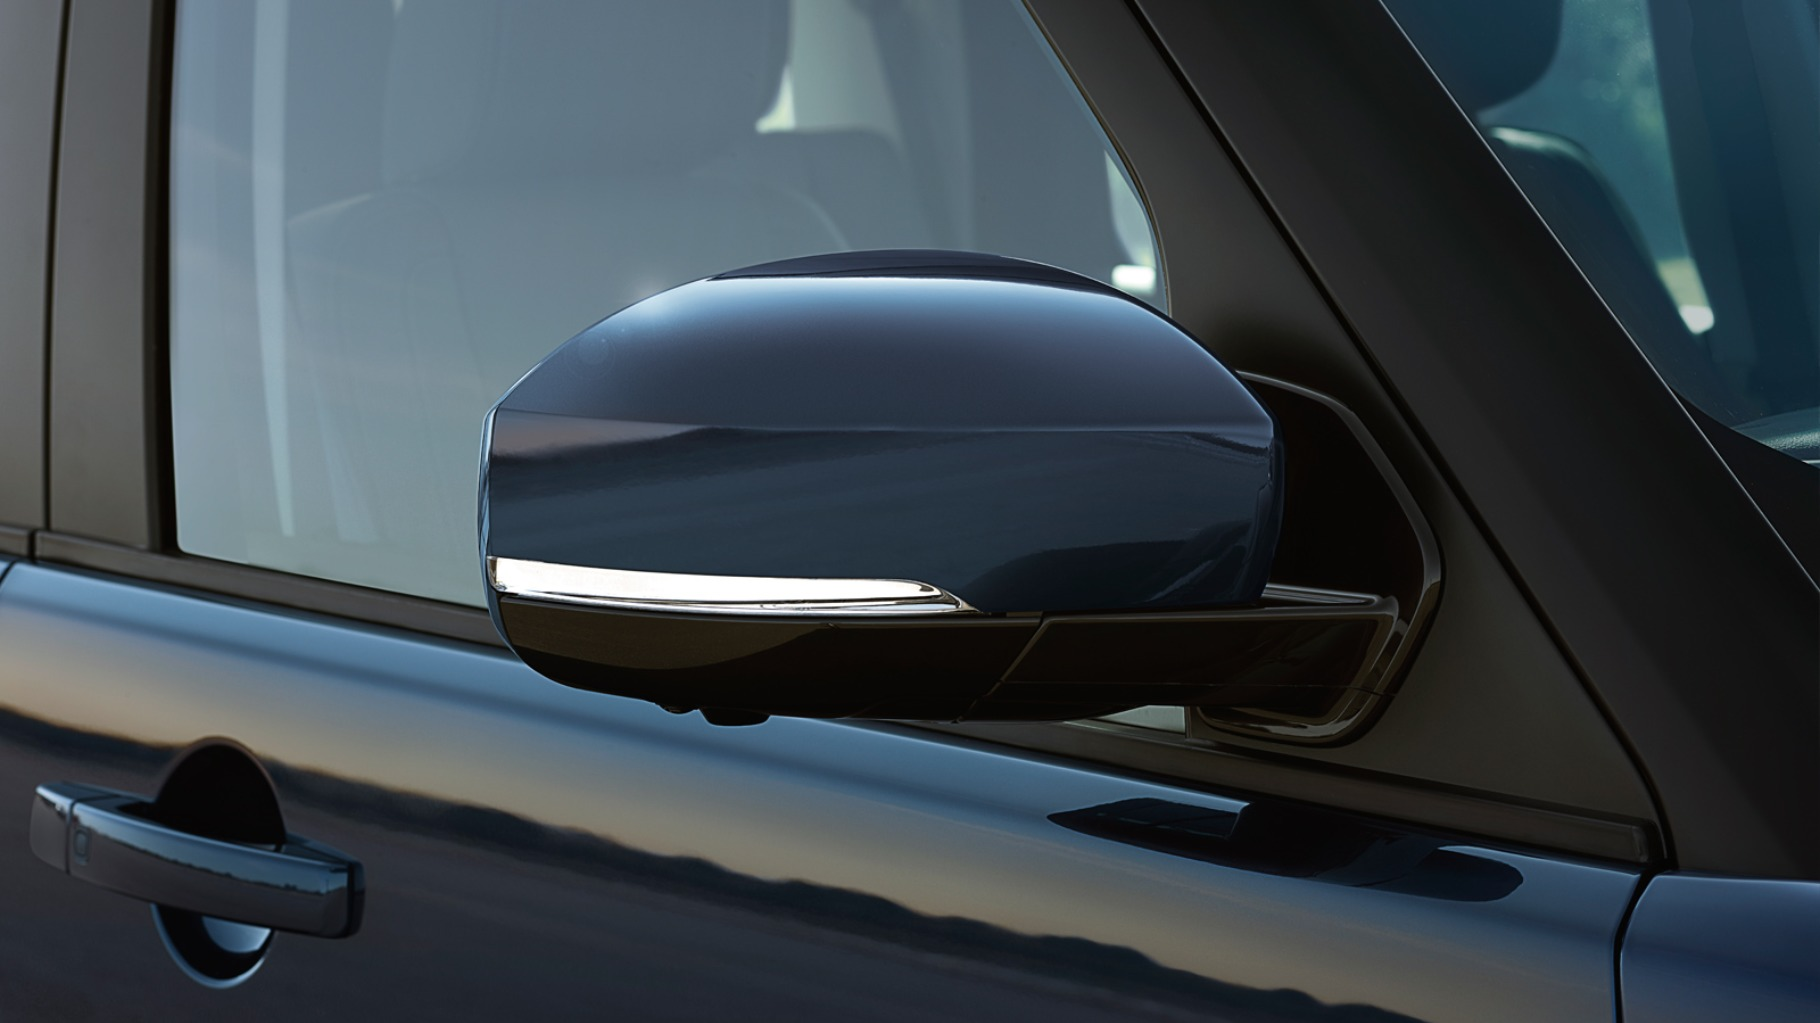 Land Rover LR4 side mirror